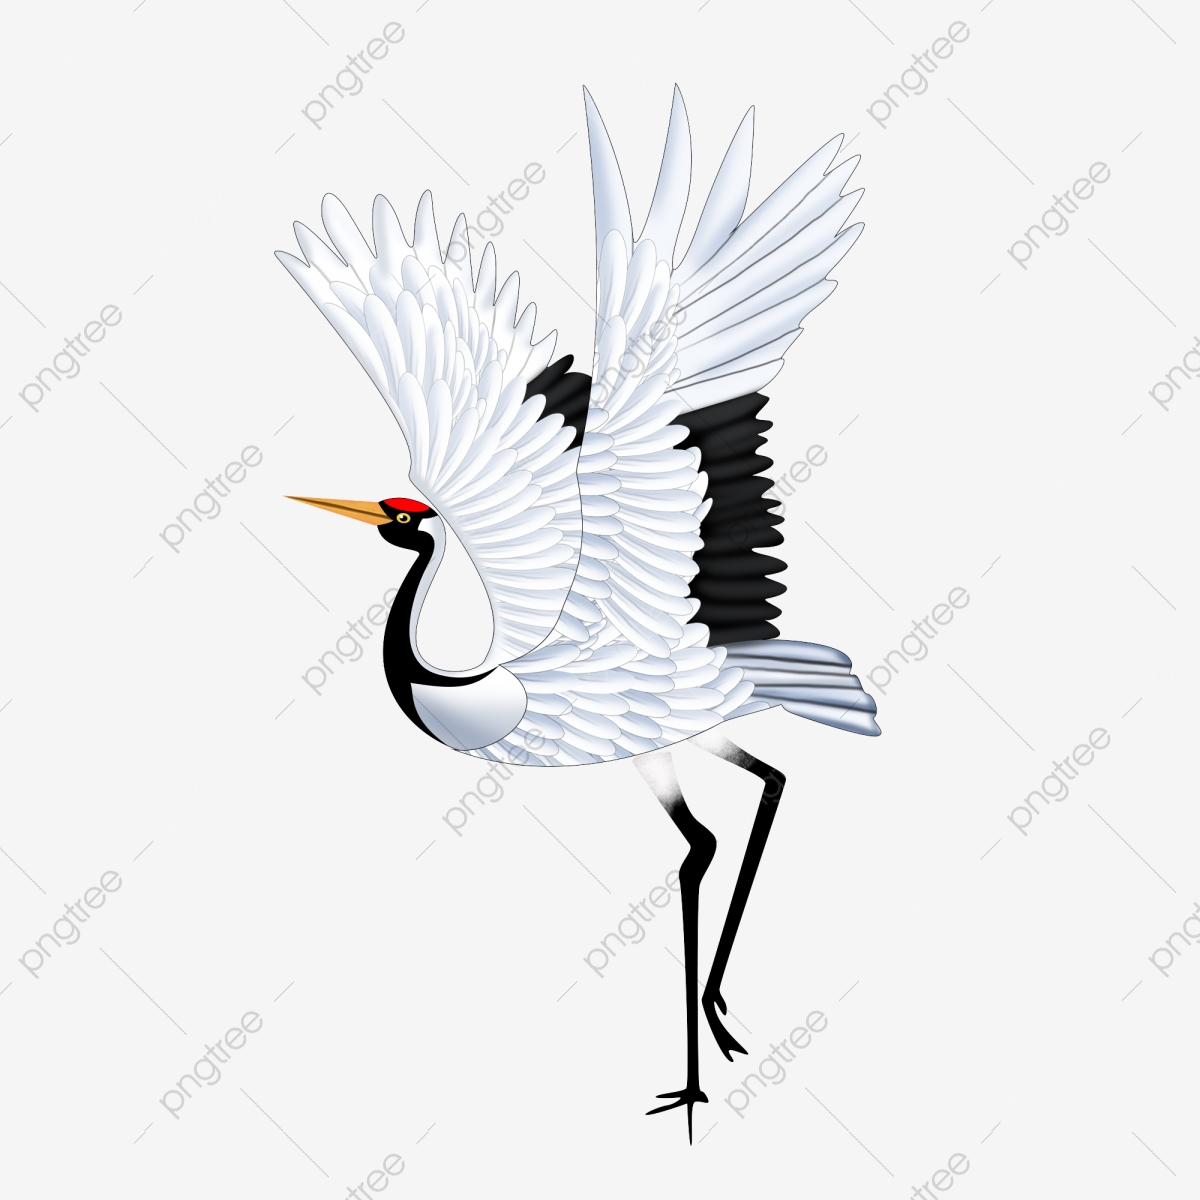 Cartoon Hand Drawn Red Crowned Crane With Commercial Elements Cartoon Hand Painted Red Crowned Crane Png Transparent Clipart Image And Psd File For Free Download Giraffe infant illustration, animal, assorted animated animals illustration, child, mammal, cat like. https pngtree com freepng cartoon hand drawn red crowned crane with commercial elements 4057456 html